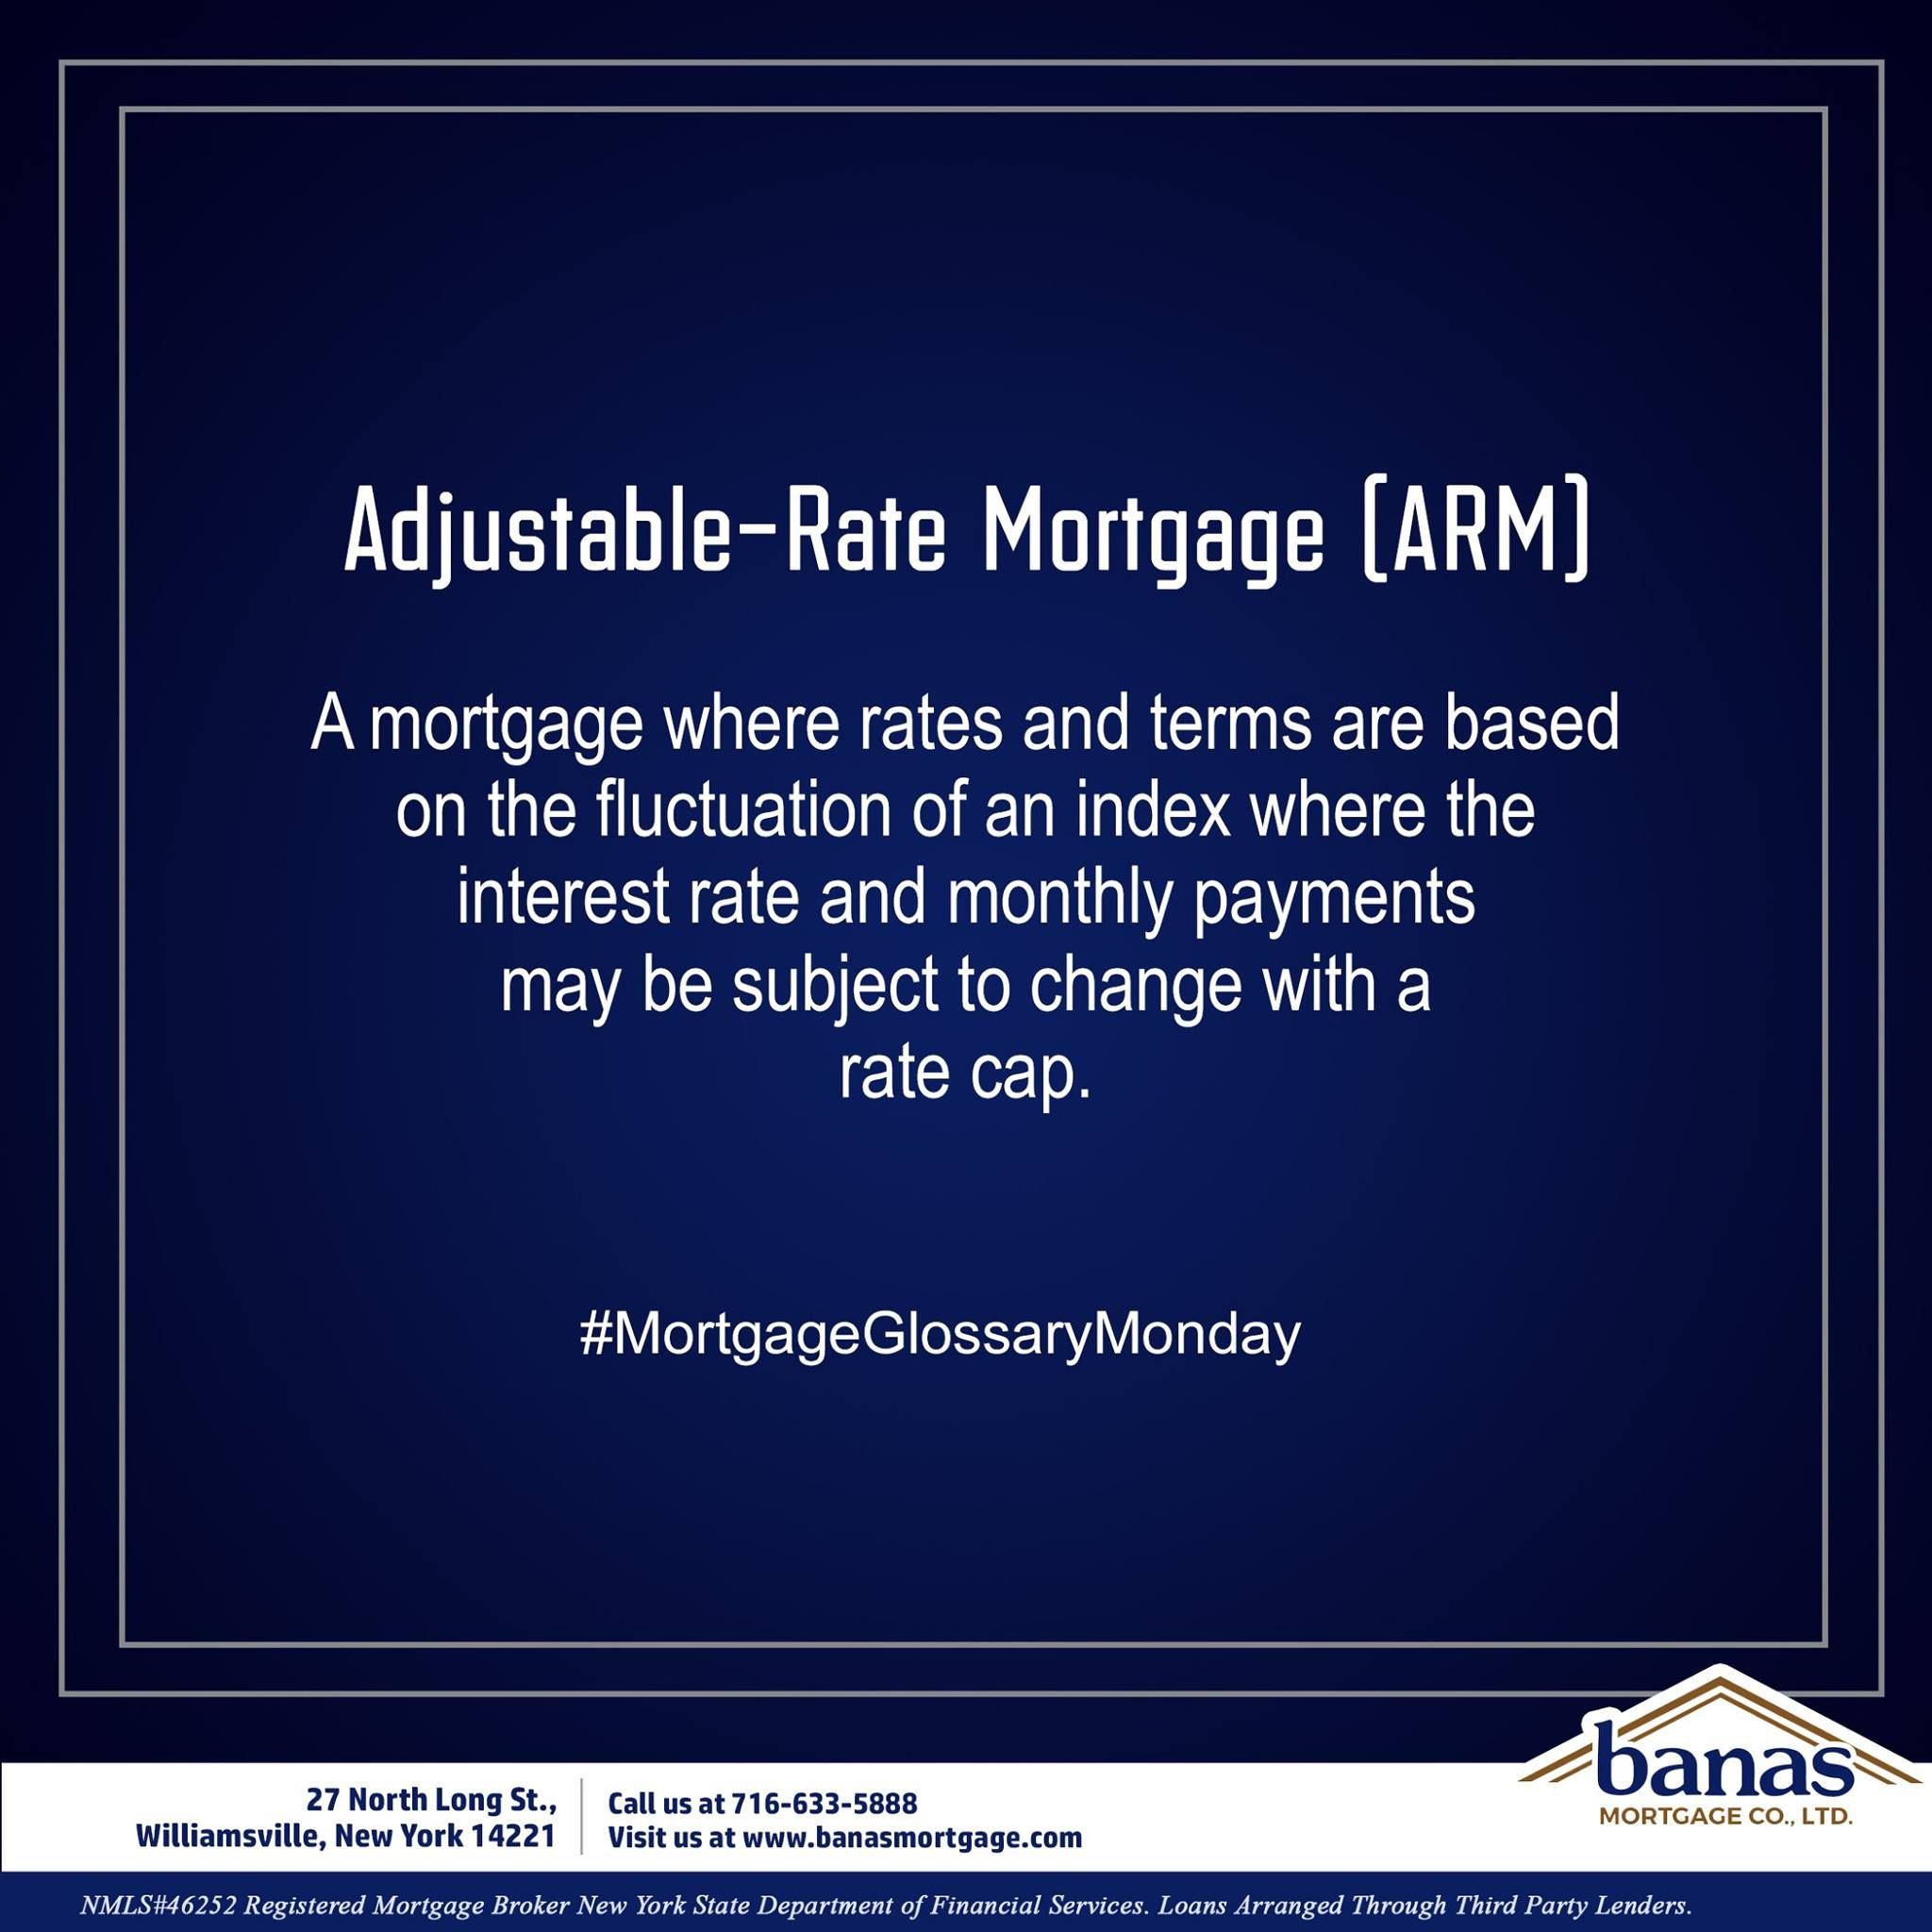 Today S Mortgage Glossary Term Is Adjustable Rate Mortgage Arm